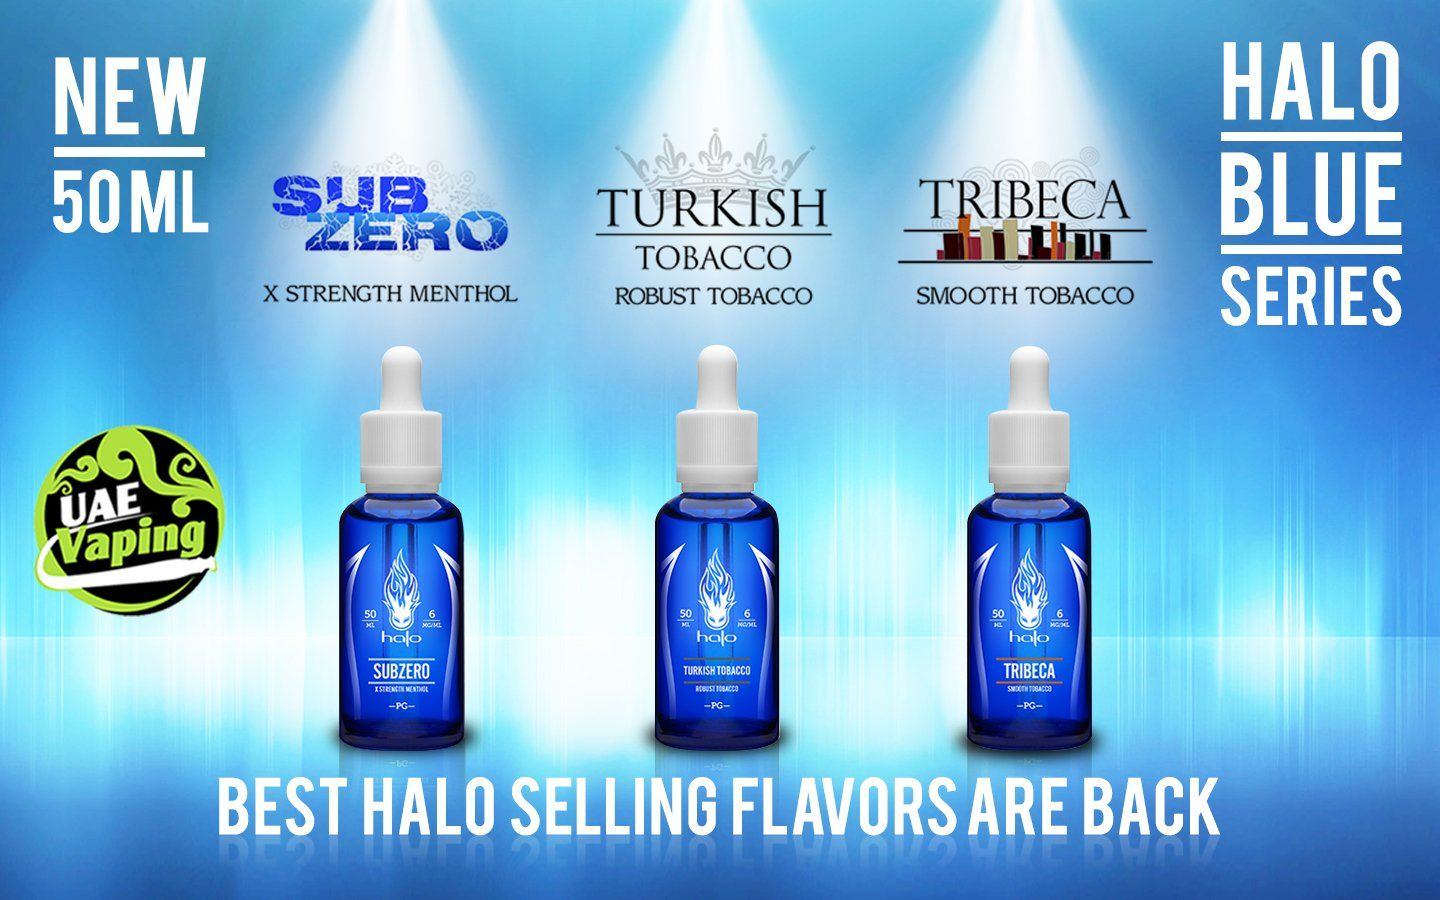 Halo branded E juices by UAE Vaping are available for Dubai